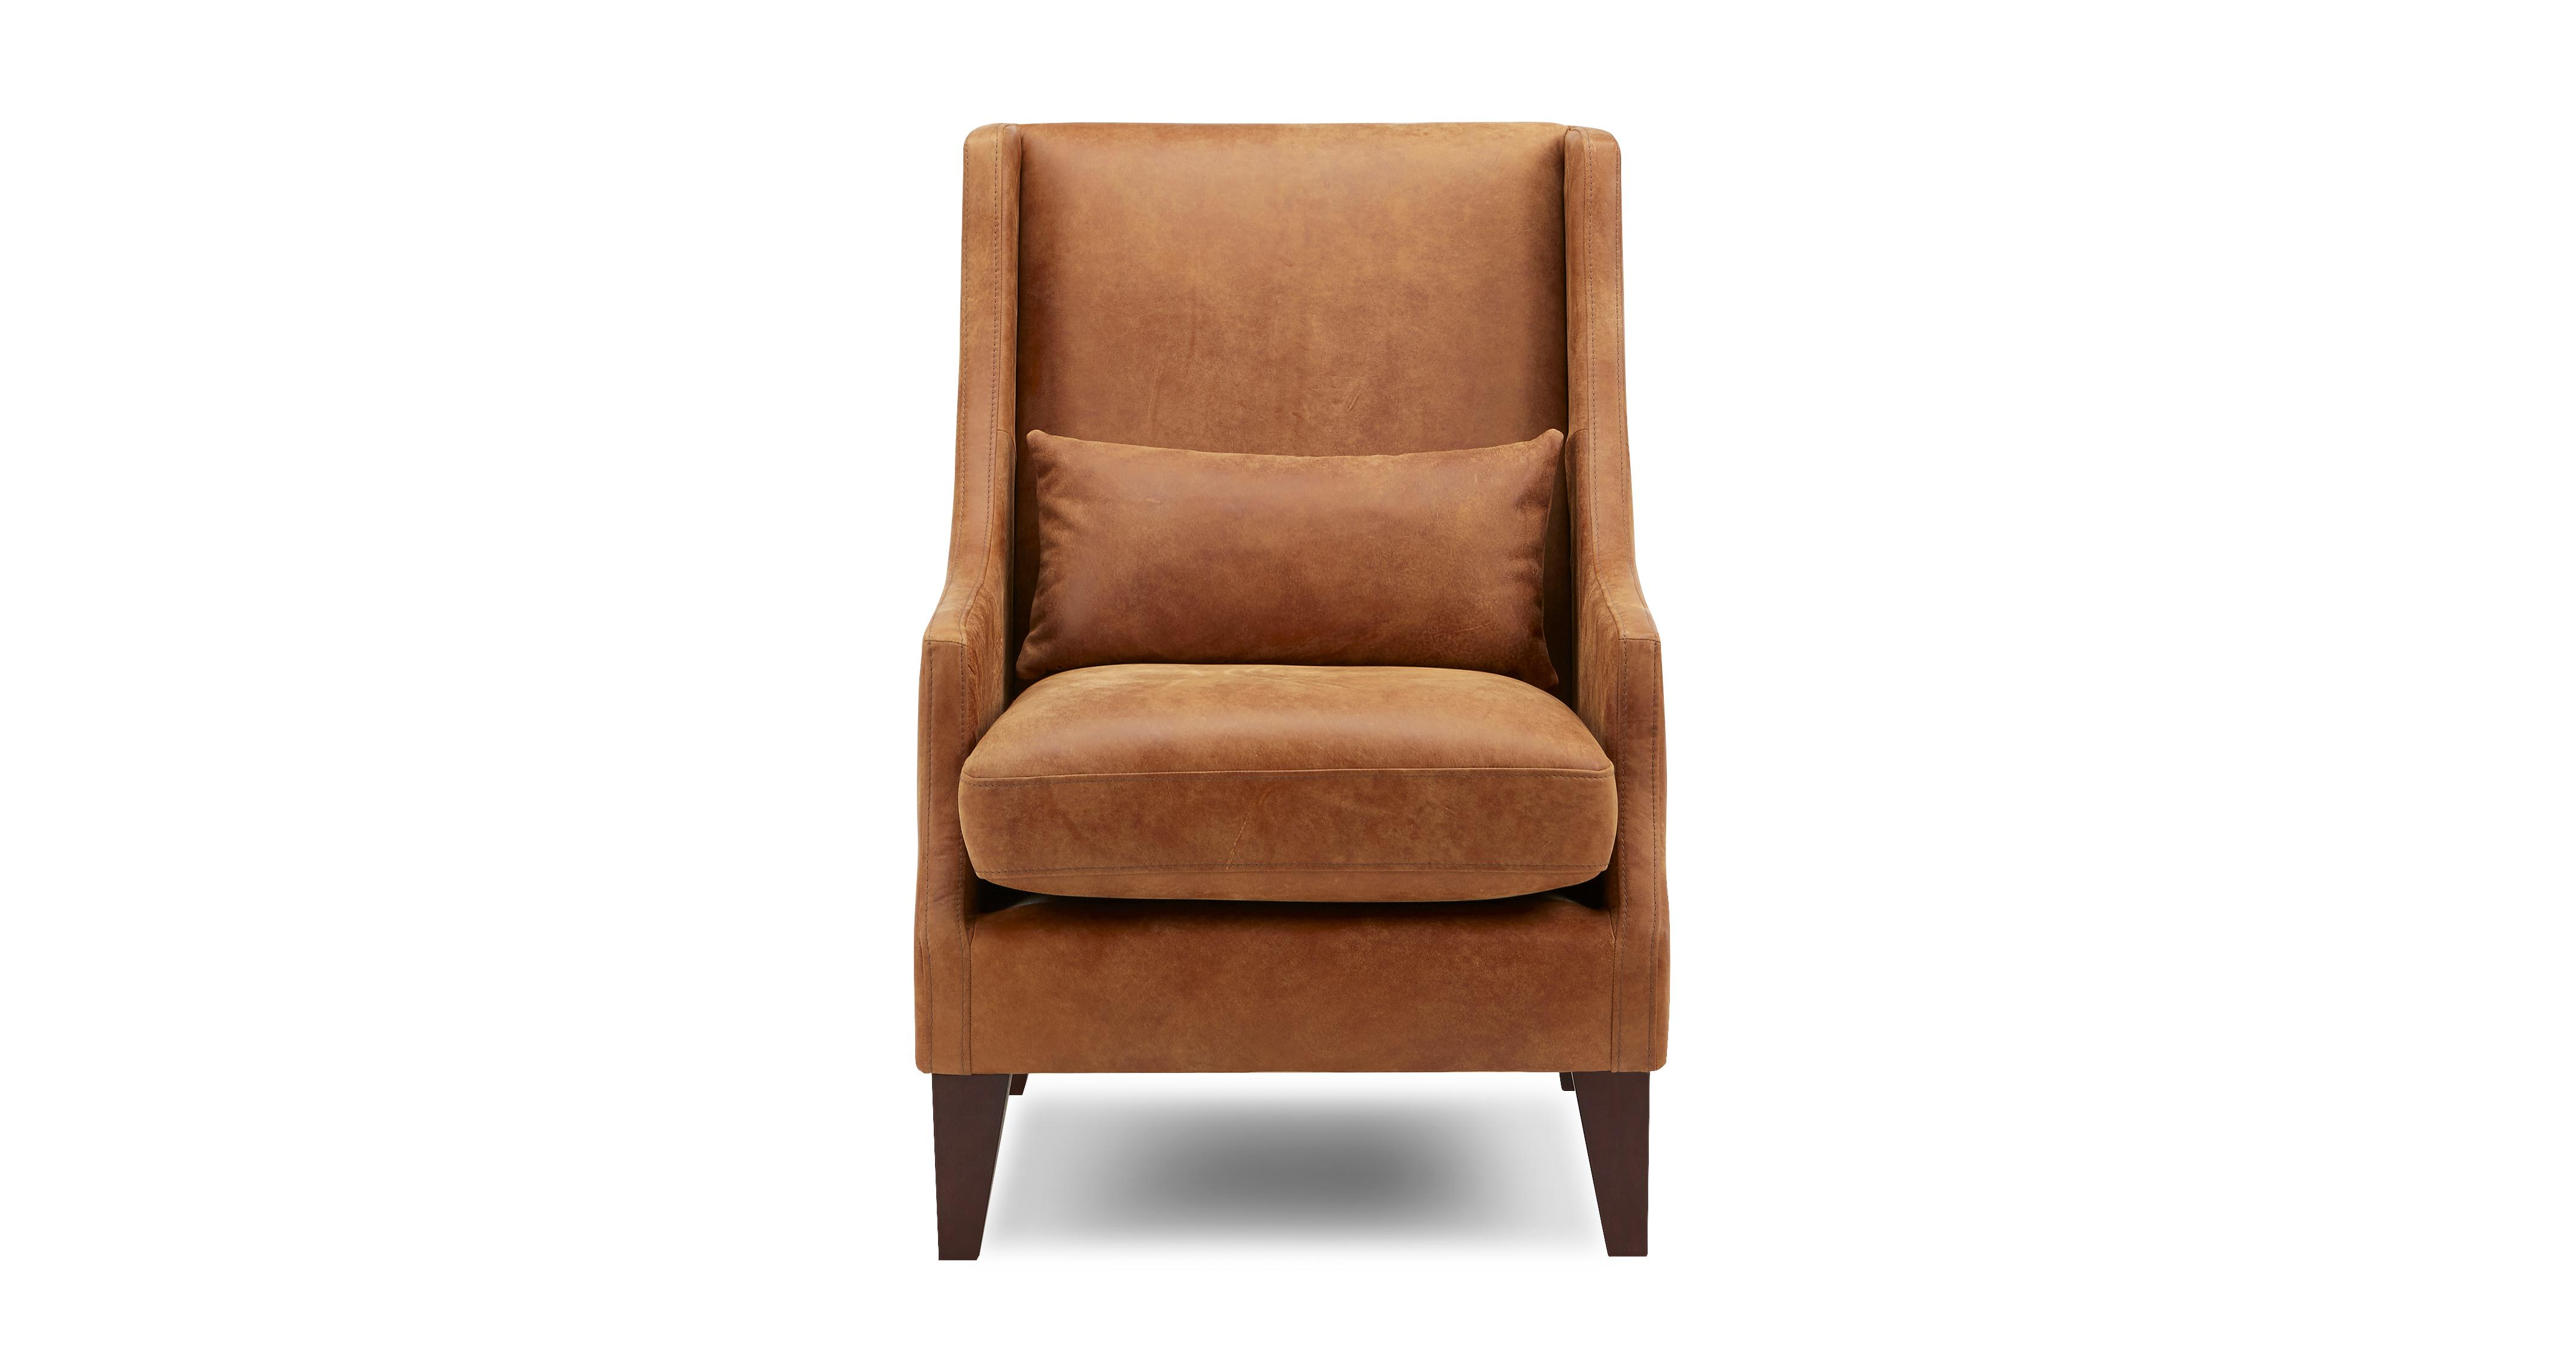 Balboa Accent Chair Saddle Dfs